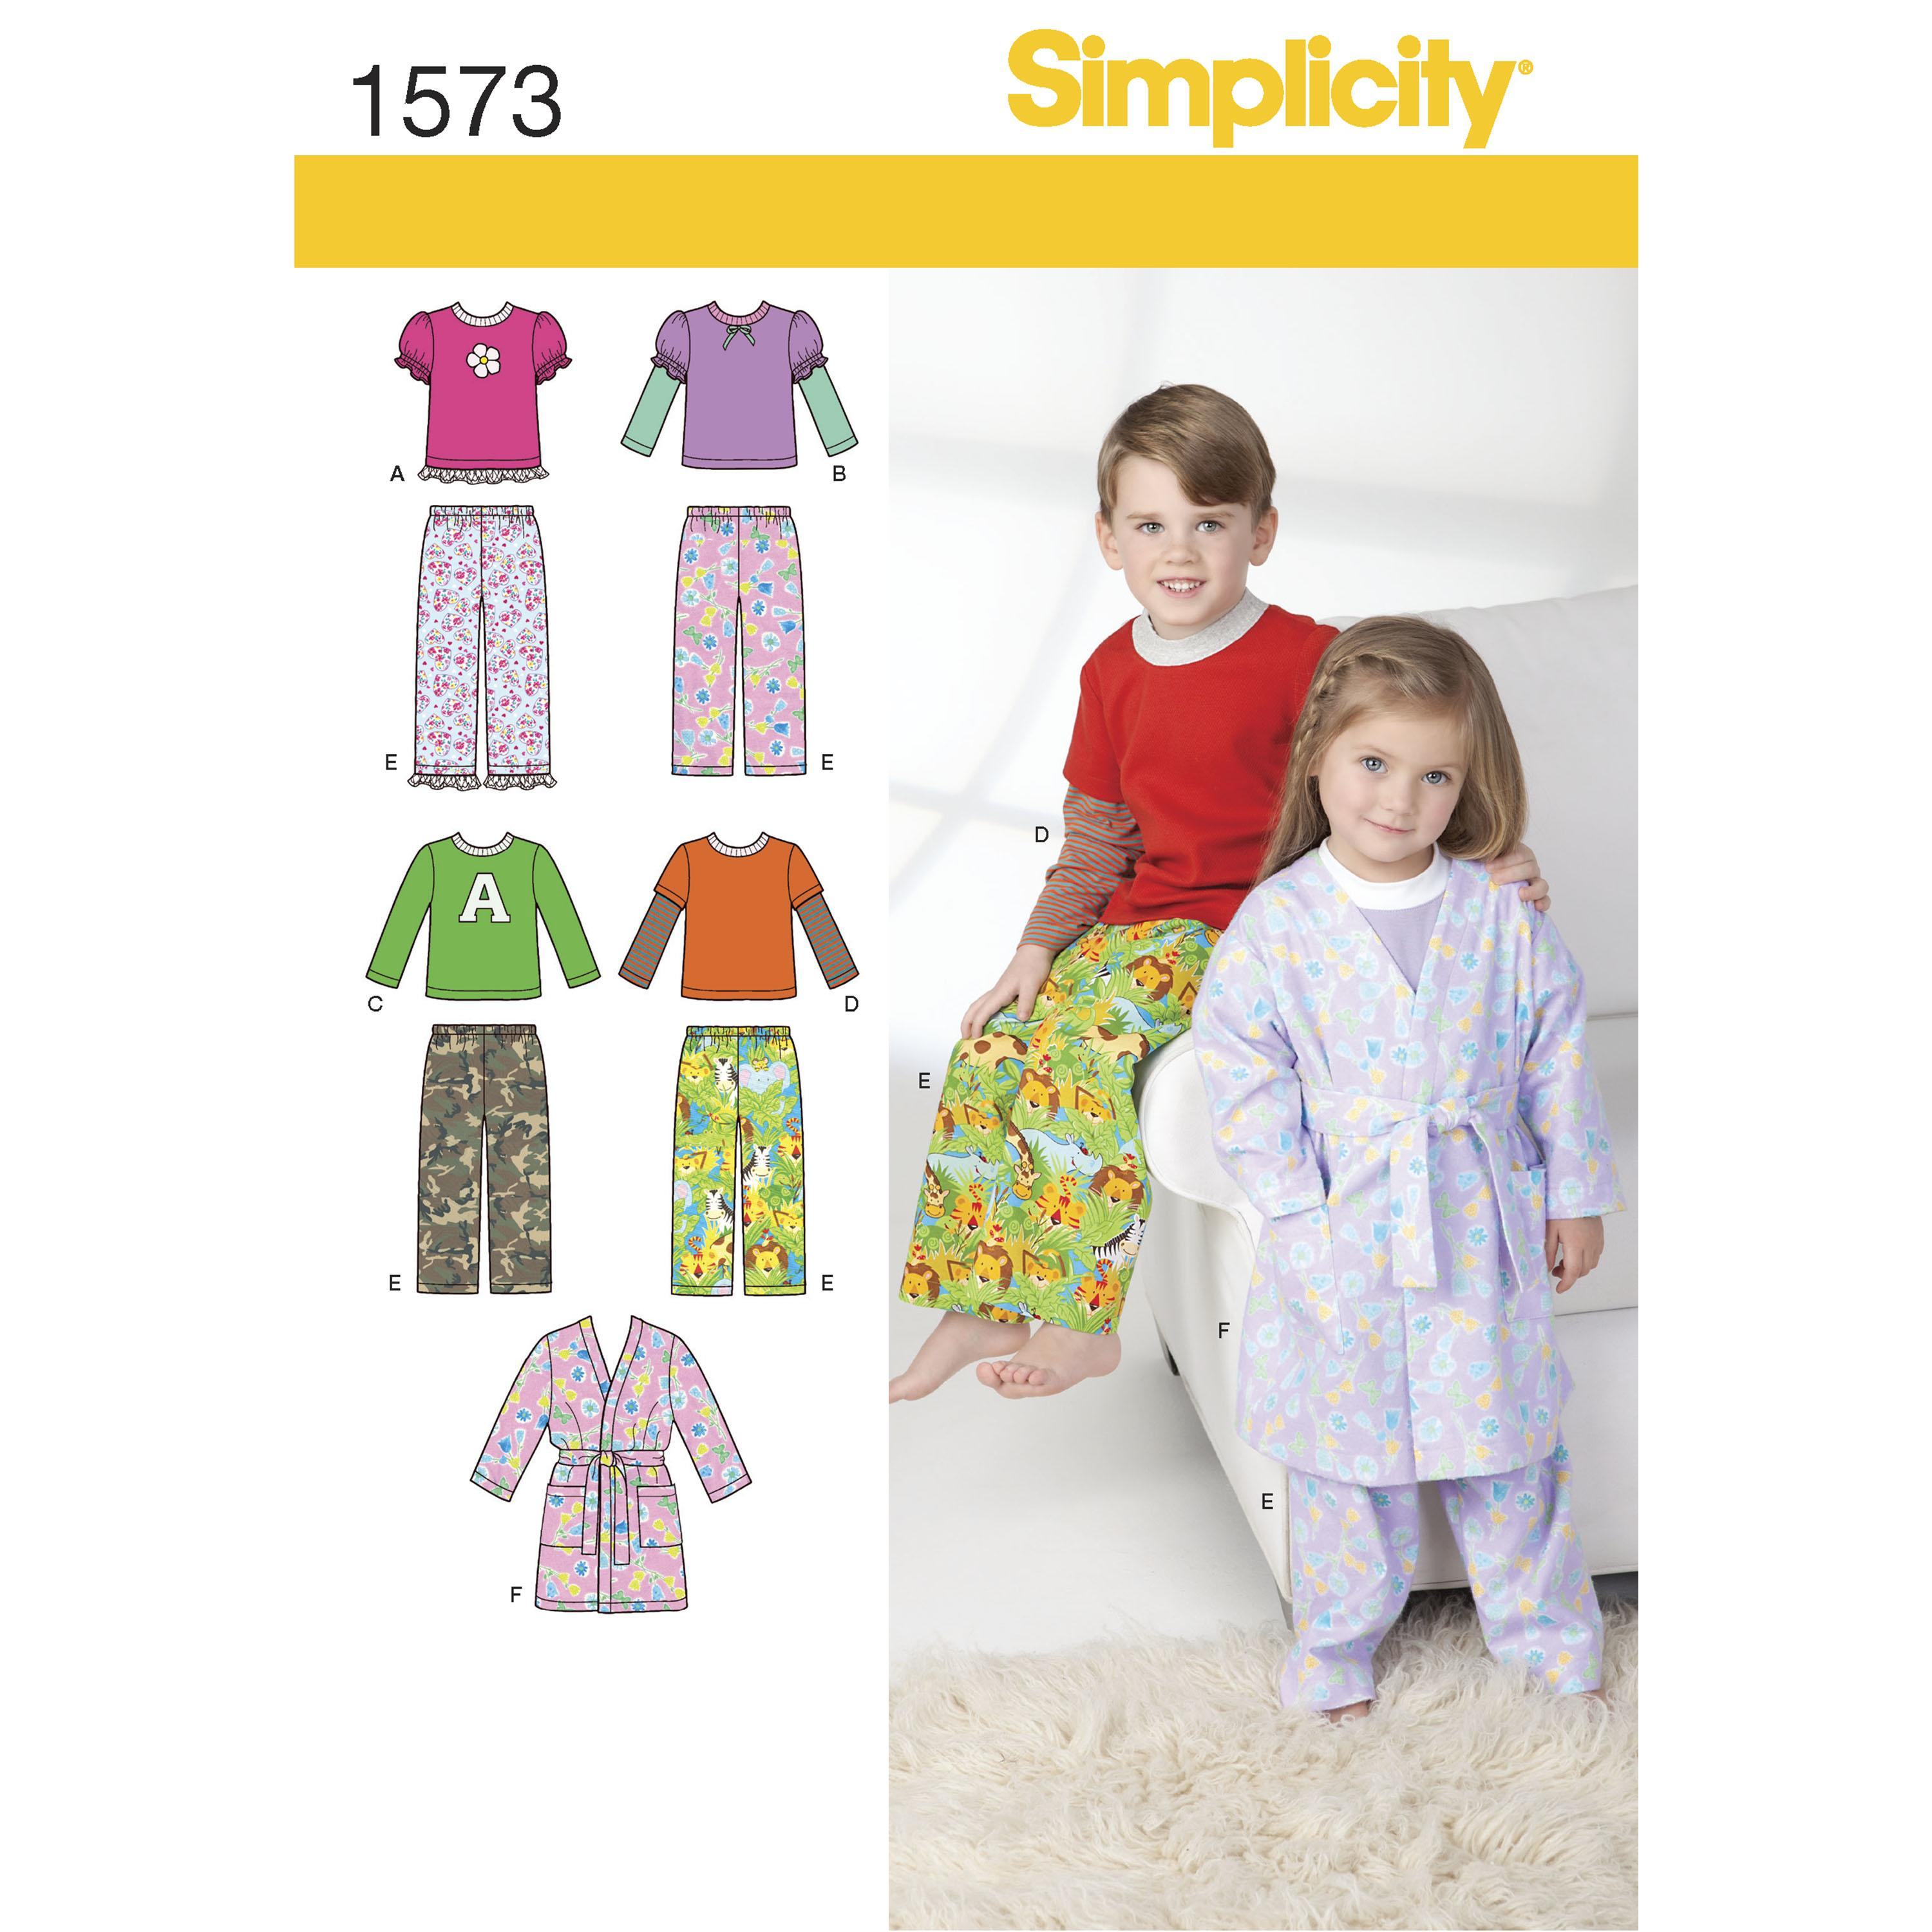 Simplicity S1573 Toddlers' and Child's Loungewear